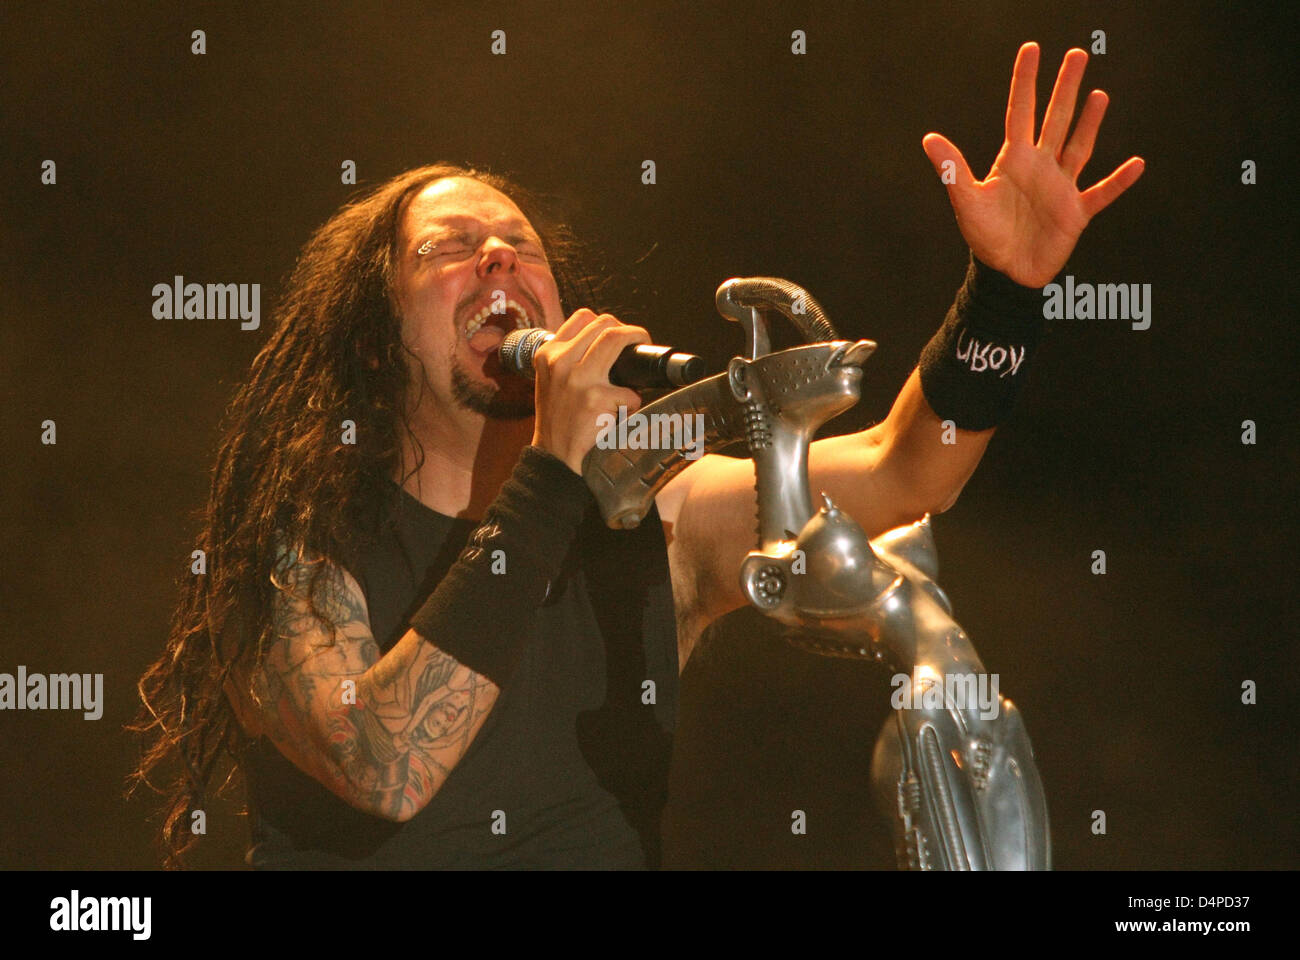 an introduction to the music band korn in california Korn began their existence as the bakersfield, california-based metal band lapd, which included guitarists james munky later that year, after returning to the studio, this time without drummer david silveria, the band resurfaced with an underwhelming album appropriately named untitled.